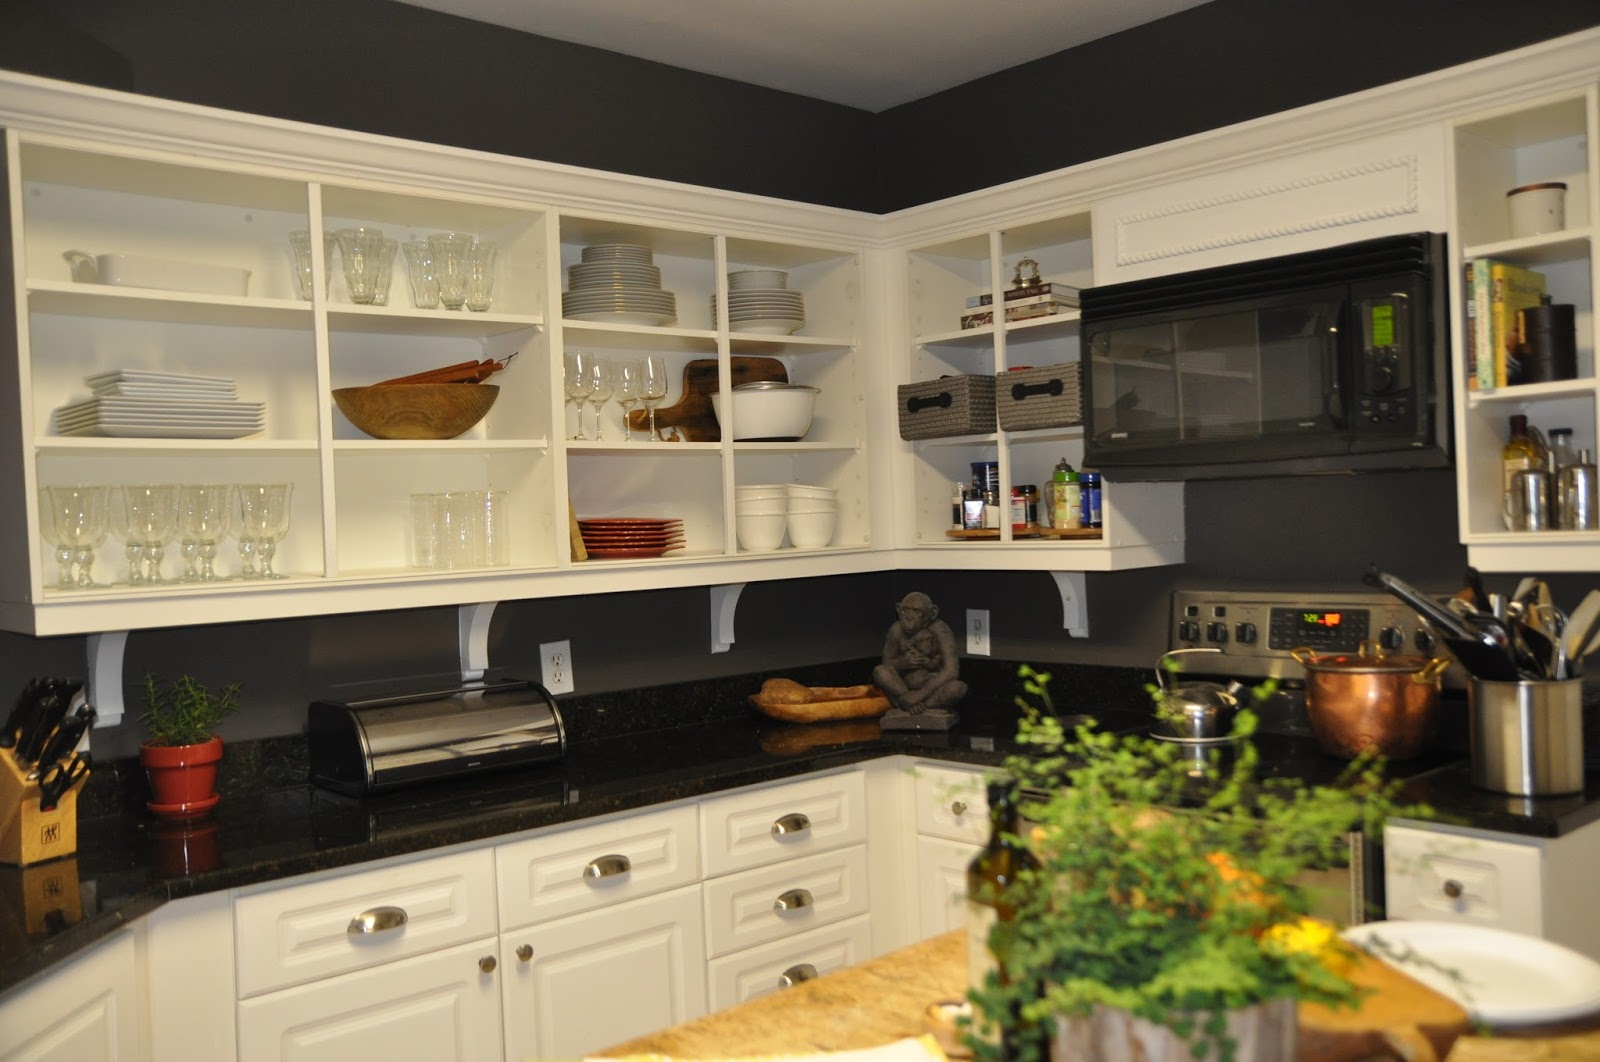 Amy Howard Paint for Kitchen Cabinets